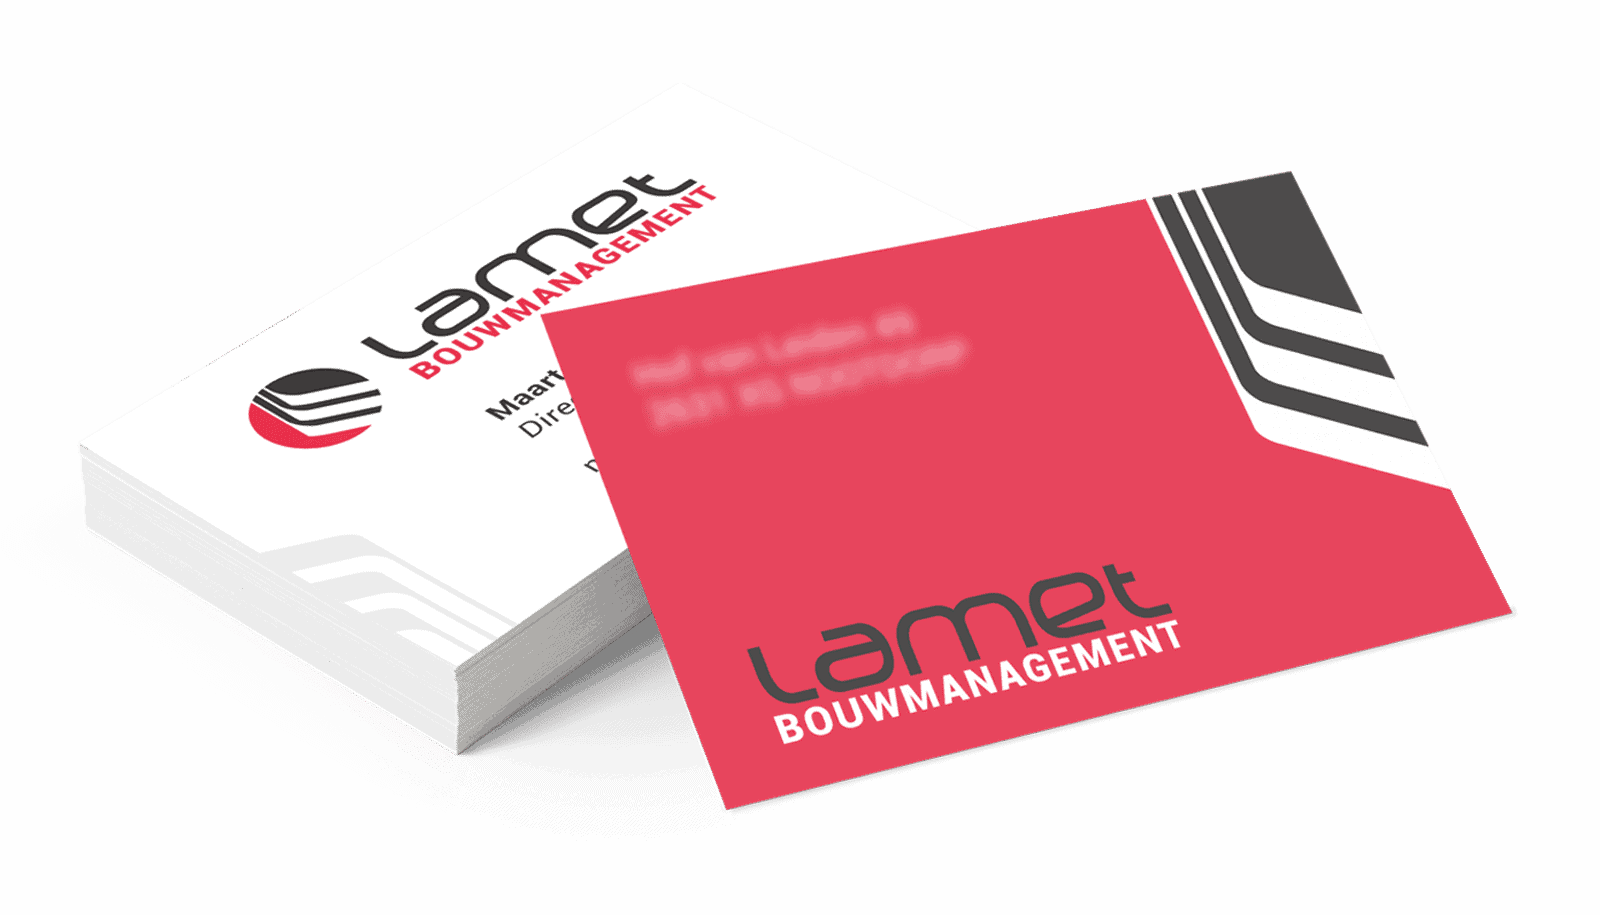 Business Cards Design for Lamet, as part of a total Corporate Identity Design